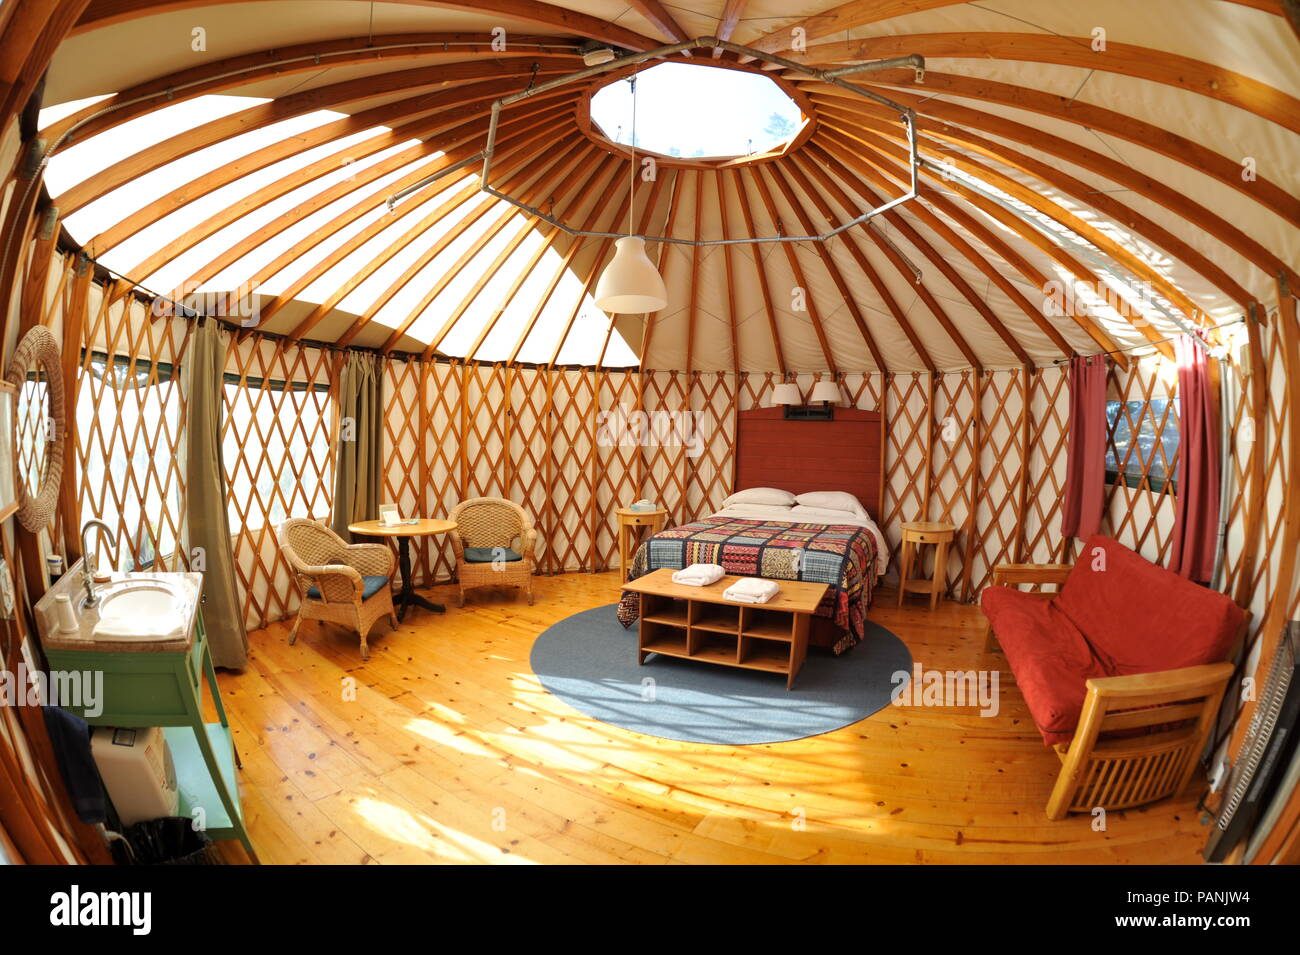 Fabric And Wood Framed Yurt Structures For Luxurious